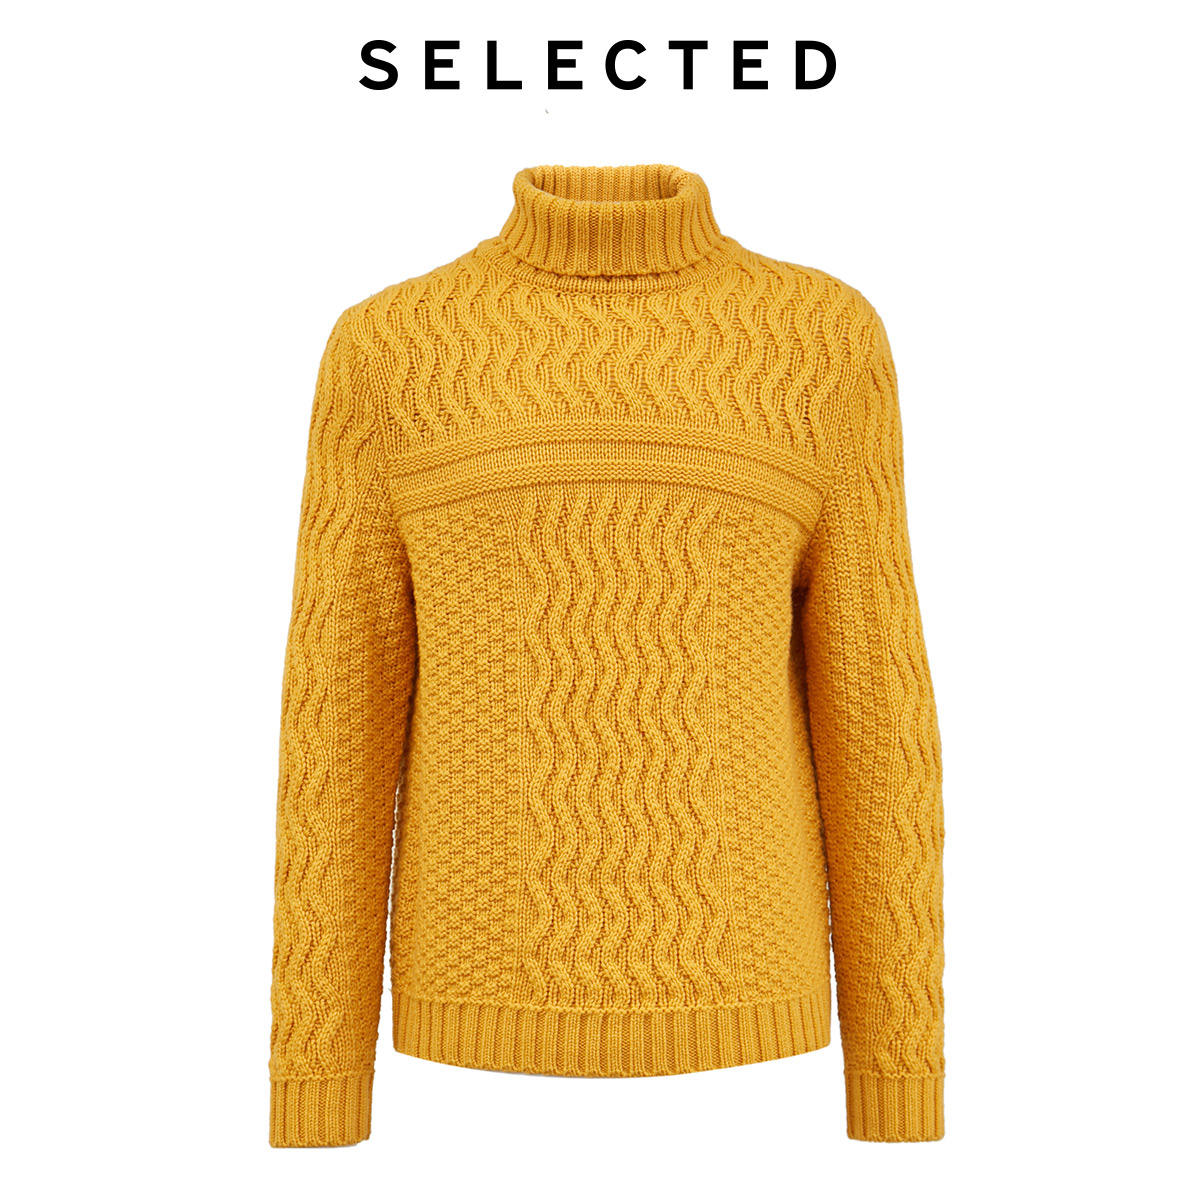 Image 5 - SELECTED Men's Autumn & Winter High necked Woolen Knitted Sweater L419424551-in Pullovers from Men's Clothing